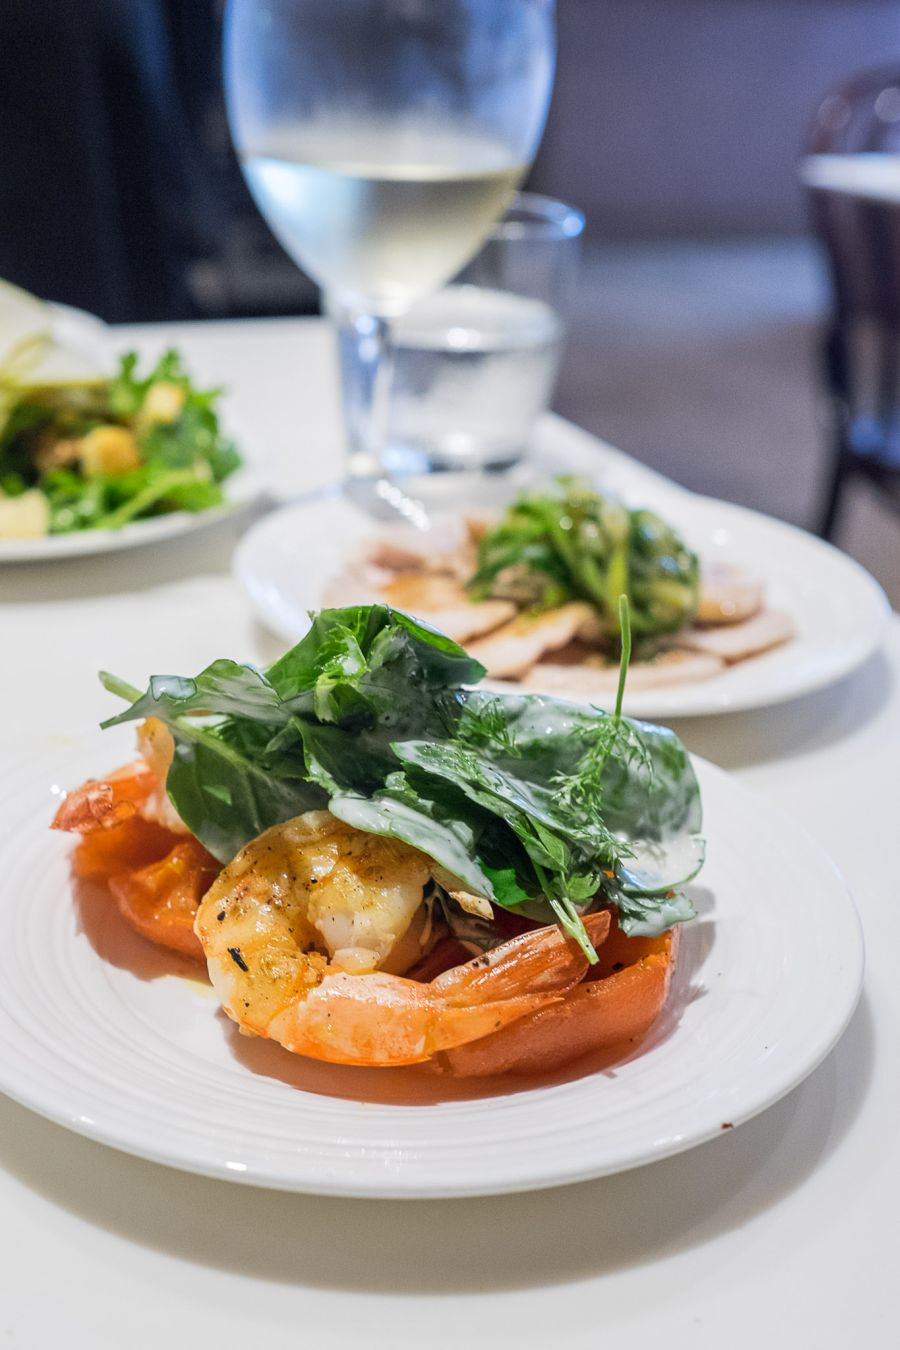 Grilled tiger prawns, saffron tomatoes, buttermilk dressed greens (AU$18.50 tapas size)